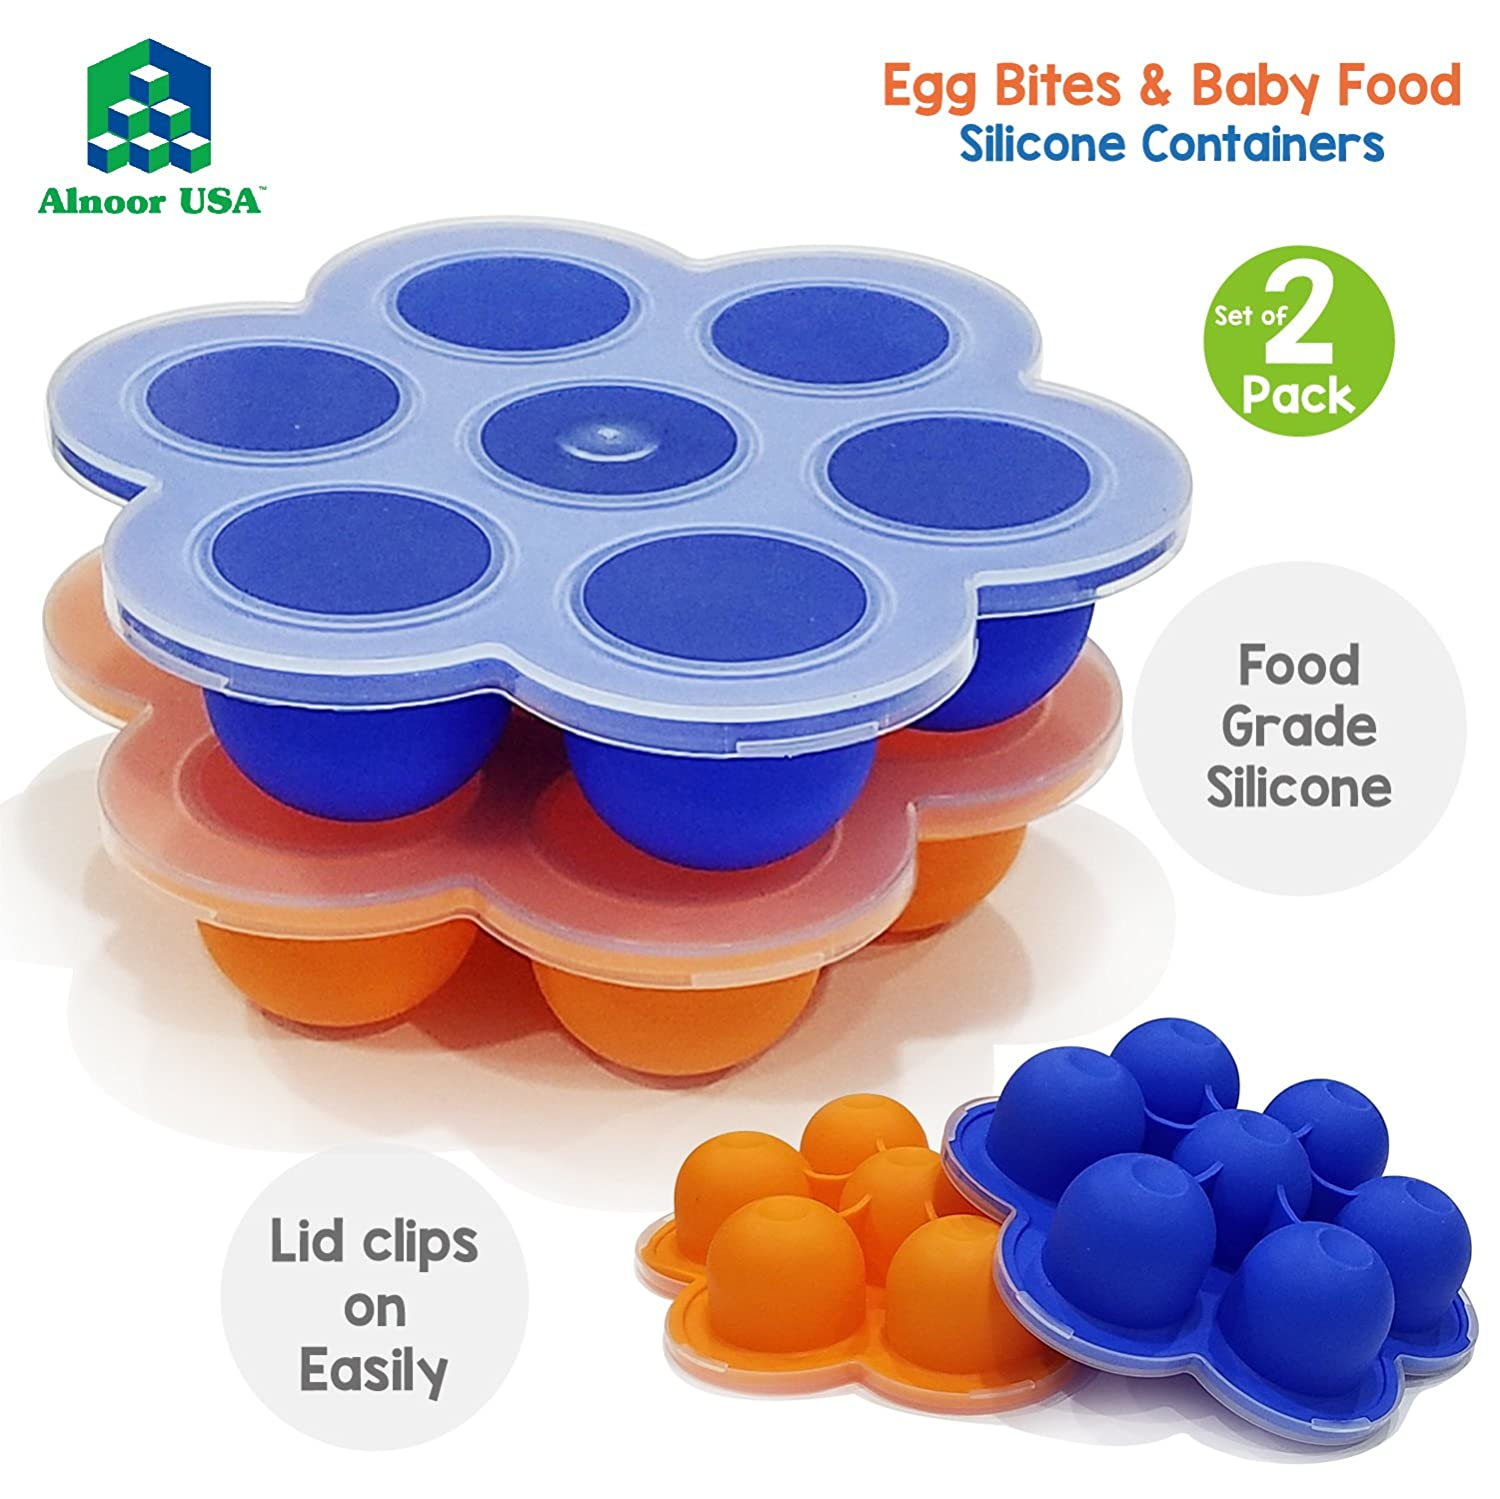 Silicone Egg Bites Molds Compatible with Instant Pot Accessories for 5,6,8 qt Pressure Cooker & Reusable Baby Food Storage Container – 7 Easy-Out Portions - Use as Freezer Tray & Egg Poacher BPA Free